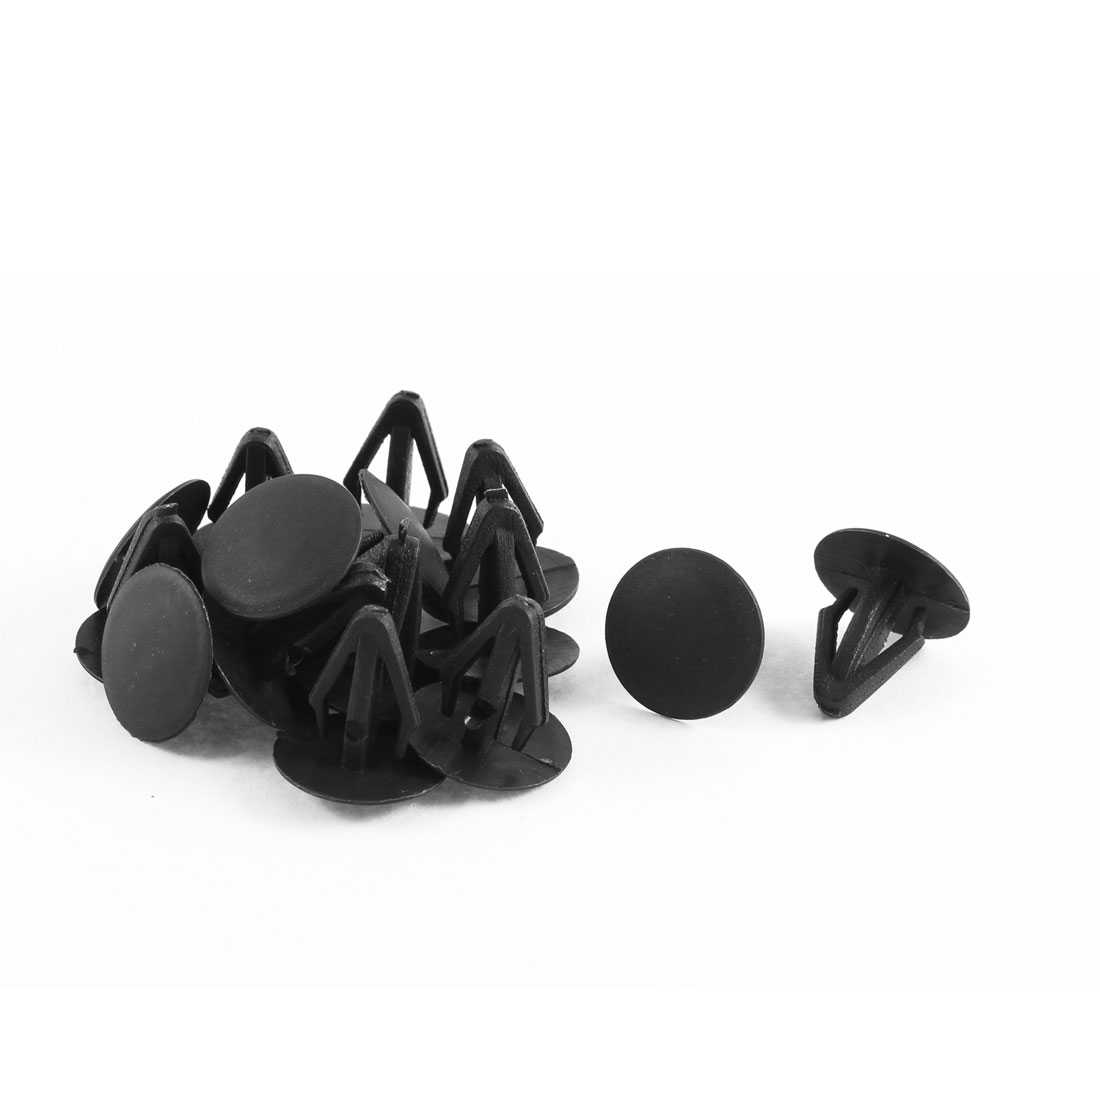 15 Pcs Black Fastener Rivet Retainer Hood Insulation Clips for 10mm Hole Dia